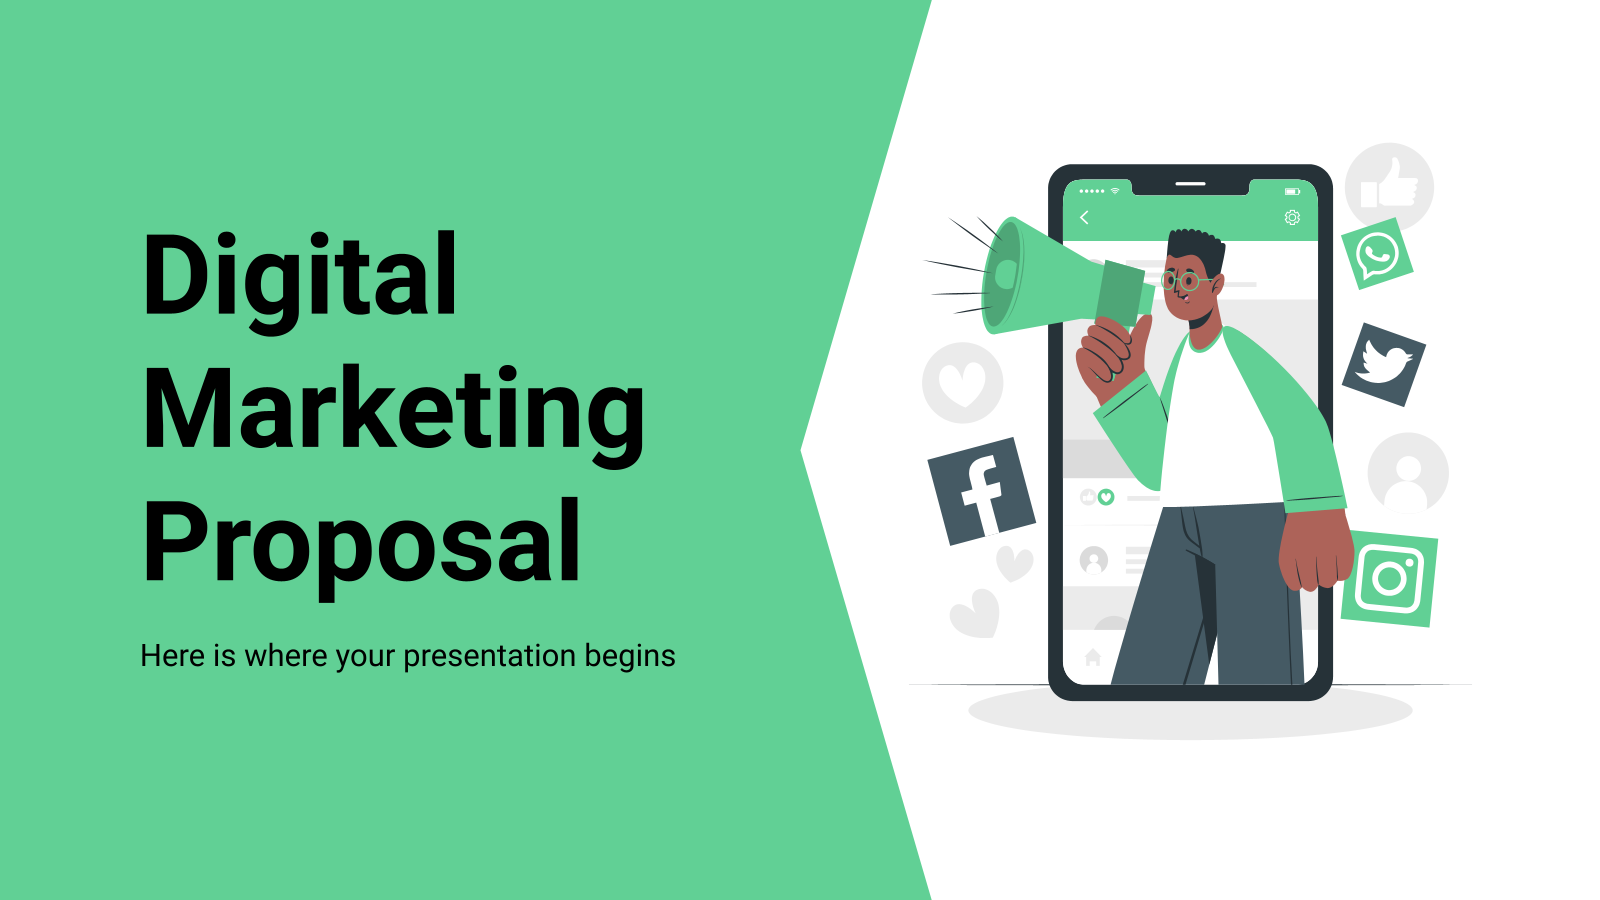 Plantilla de presentación Propuesta para marketing digital